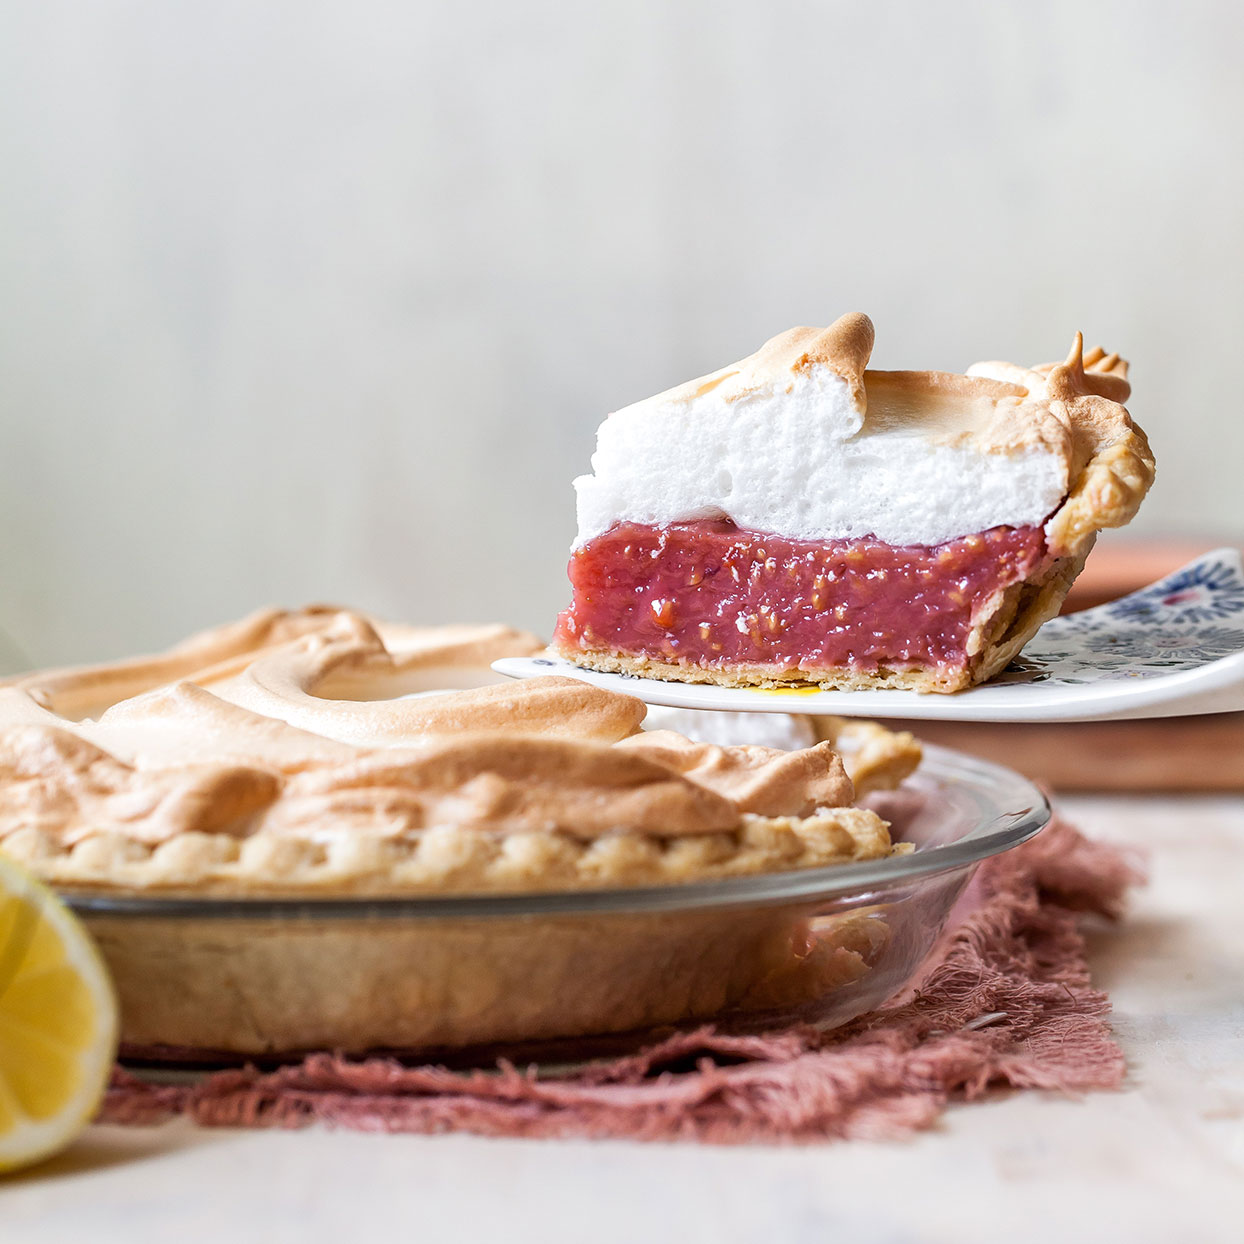 If you like pink lemonade, you'll love this summertime pie! The meringue is light and fluffy, and the filling is reminiscent of classic lemon meringue pie filling. The tanginess of the lemon helps cut through the sweetness, which makes the pie even more refreshing. Enjoy chilled or at room temperature as a light, summer dessert.Source: EatingWell.com, July 2020